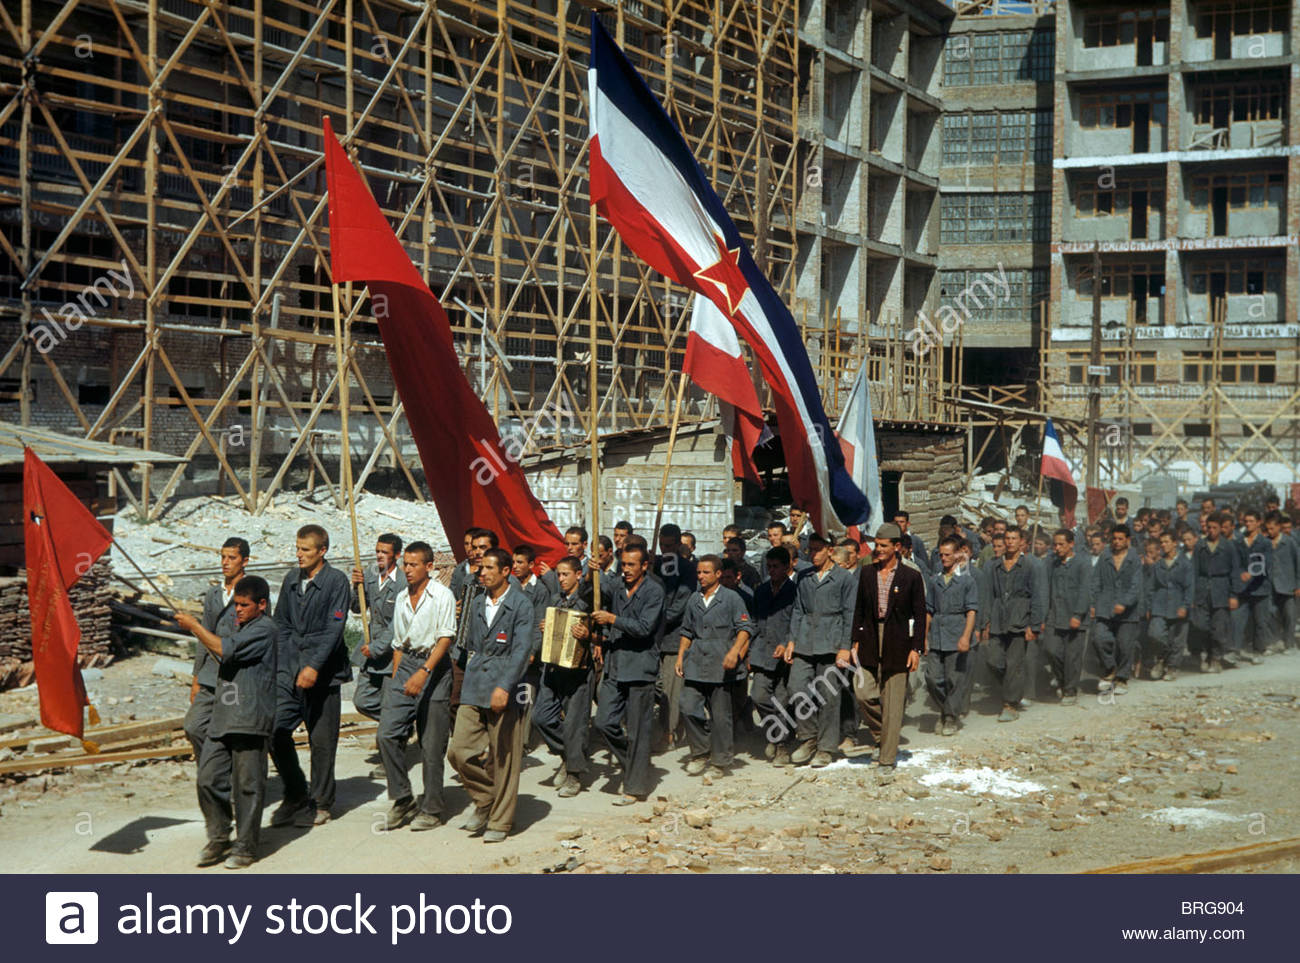 Farmers recruited for construction work march behind flags to lunch. - Stock Image